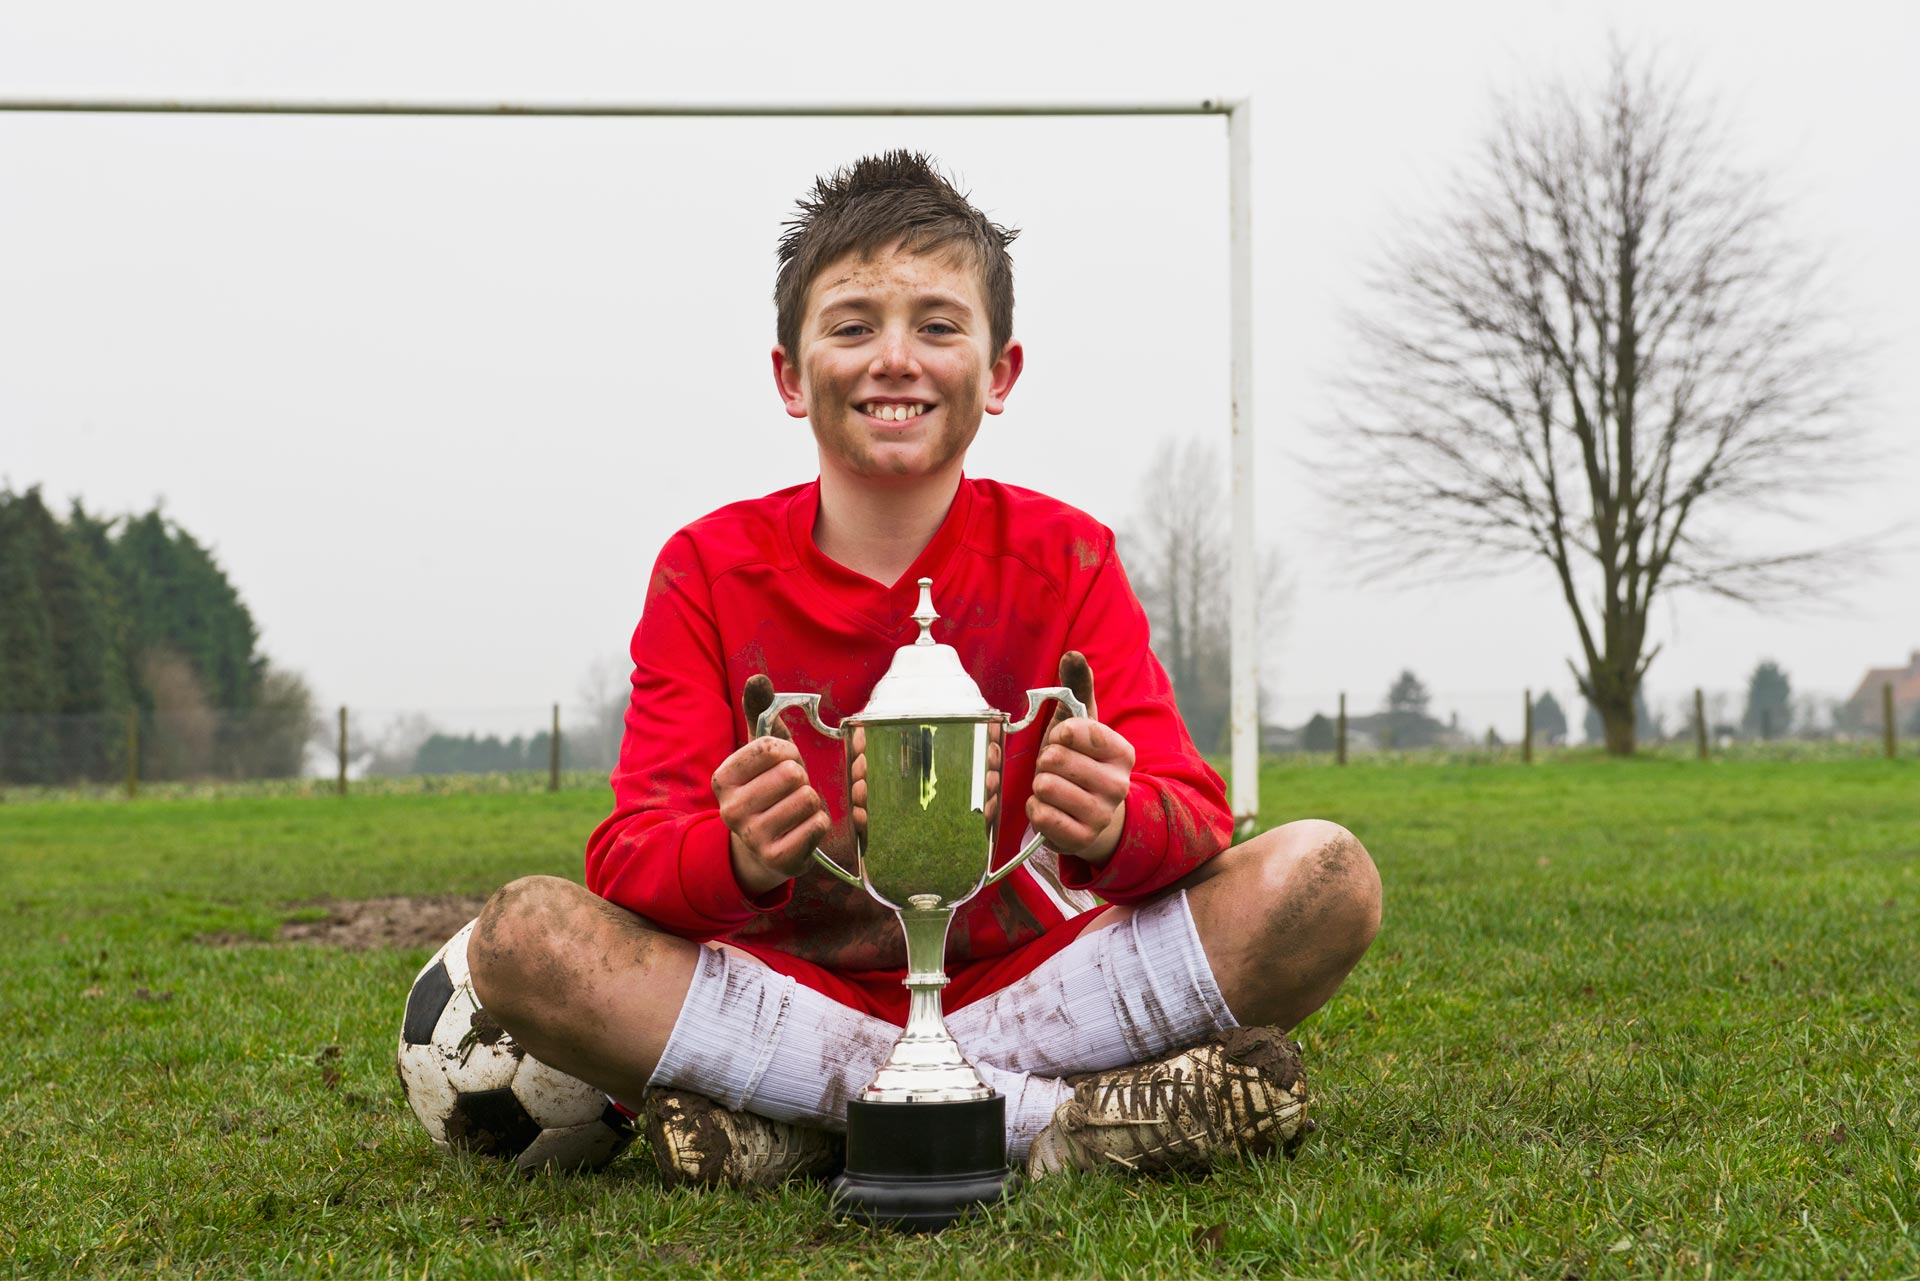 a boy with a trophy